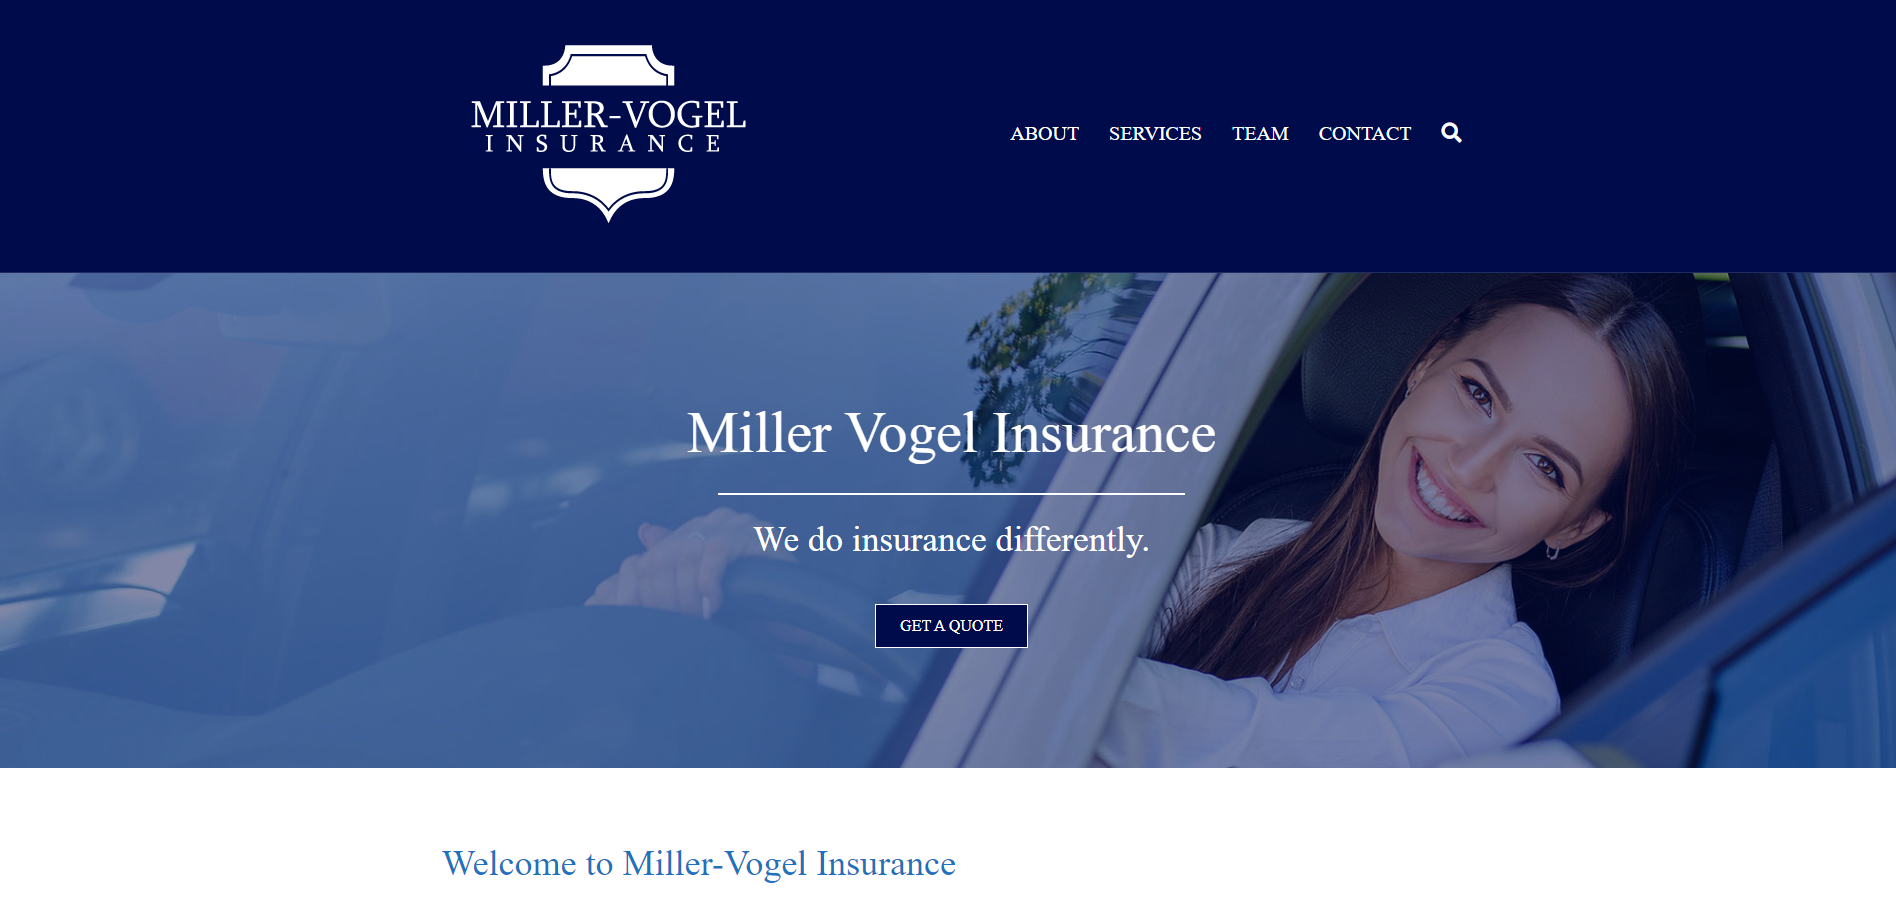 Miller-Vogel Insurance - Website